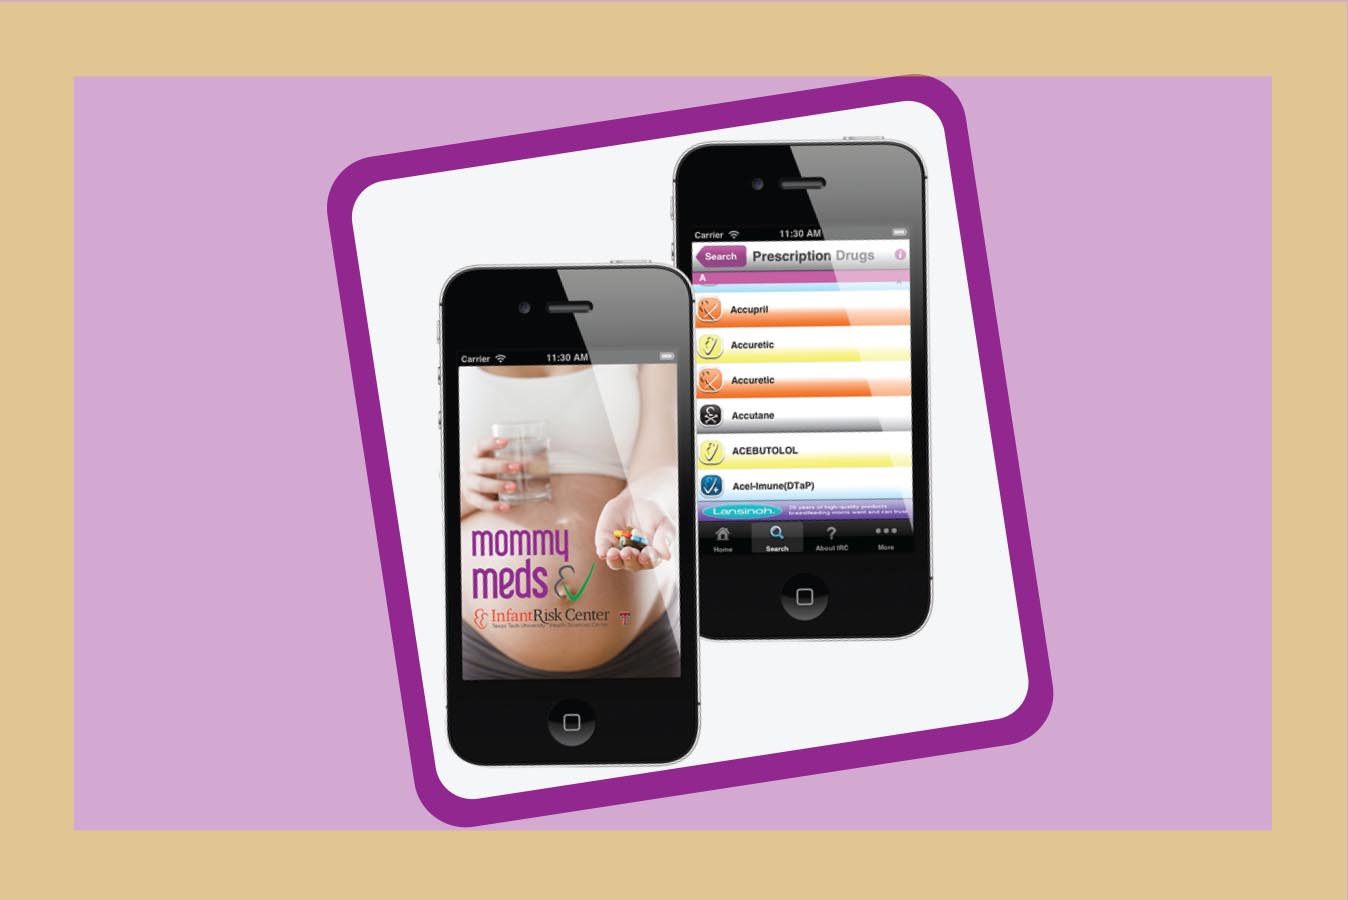 MommyMeds™ App: The Latest Diaper Bag Essential